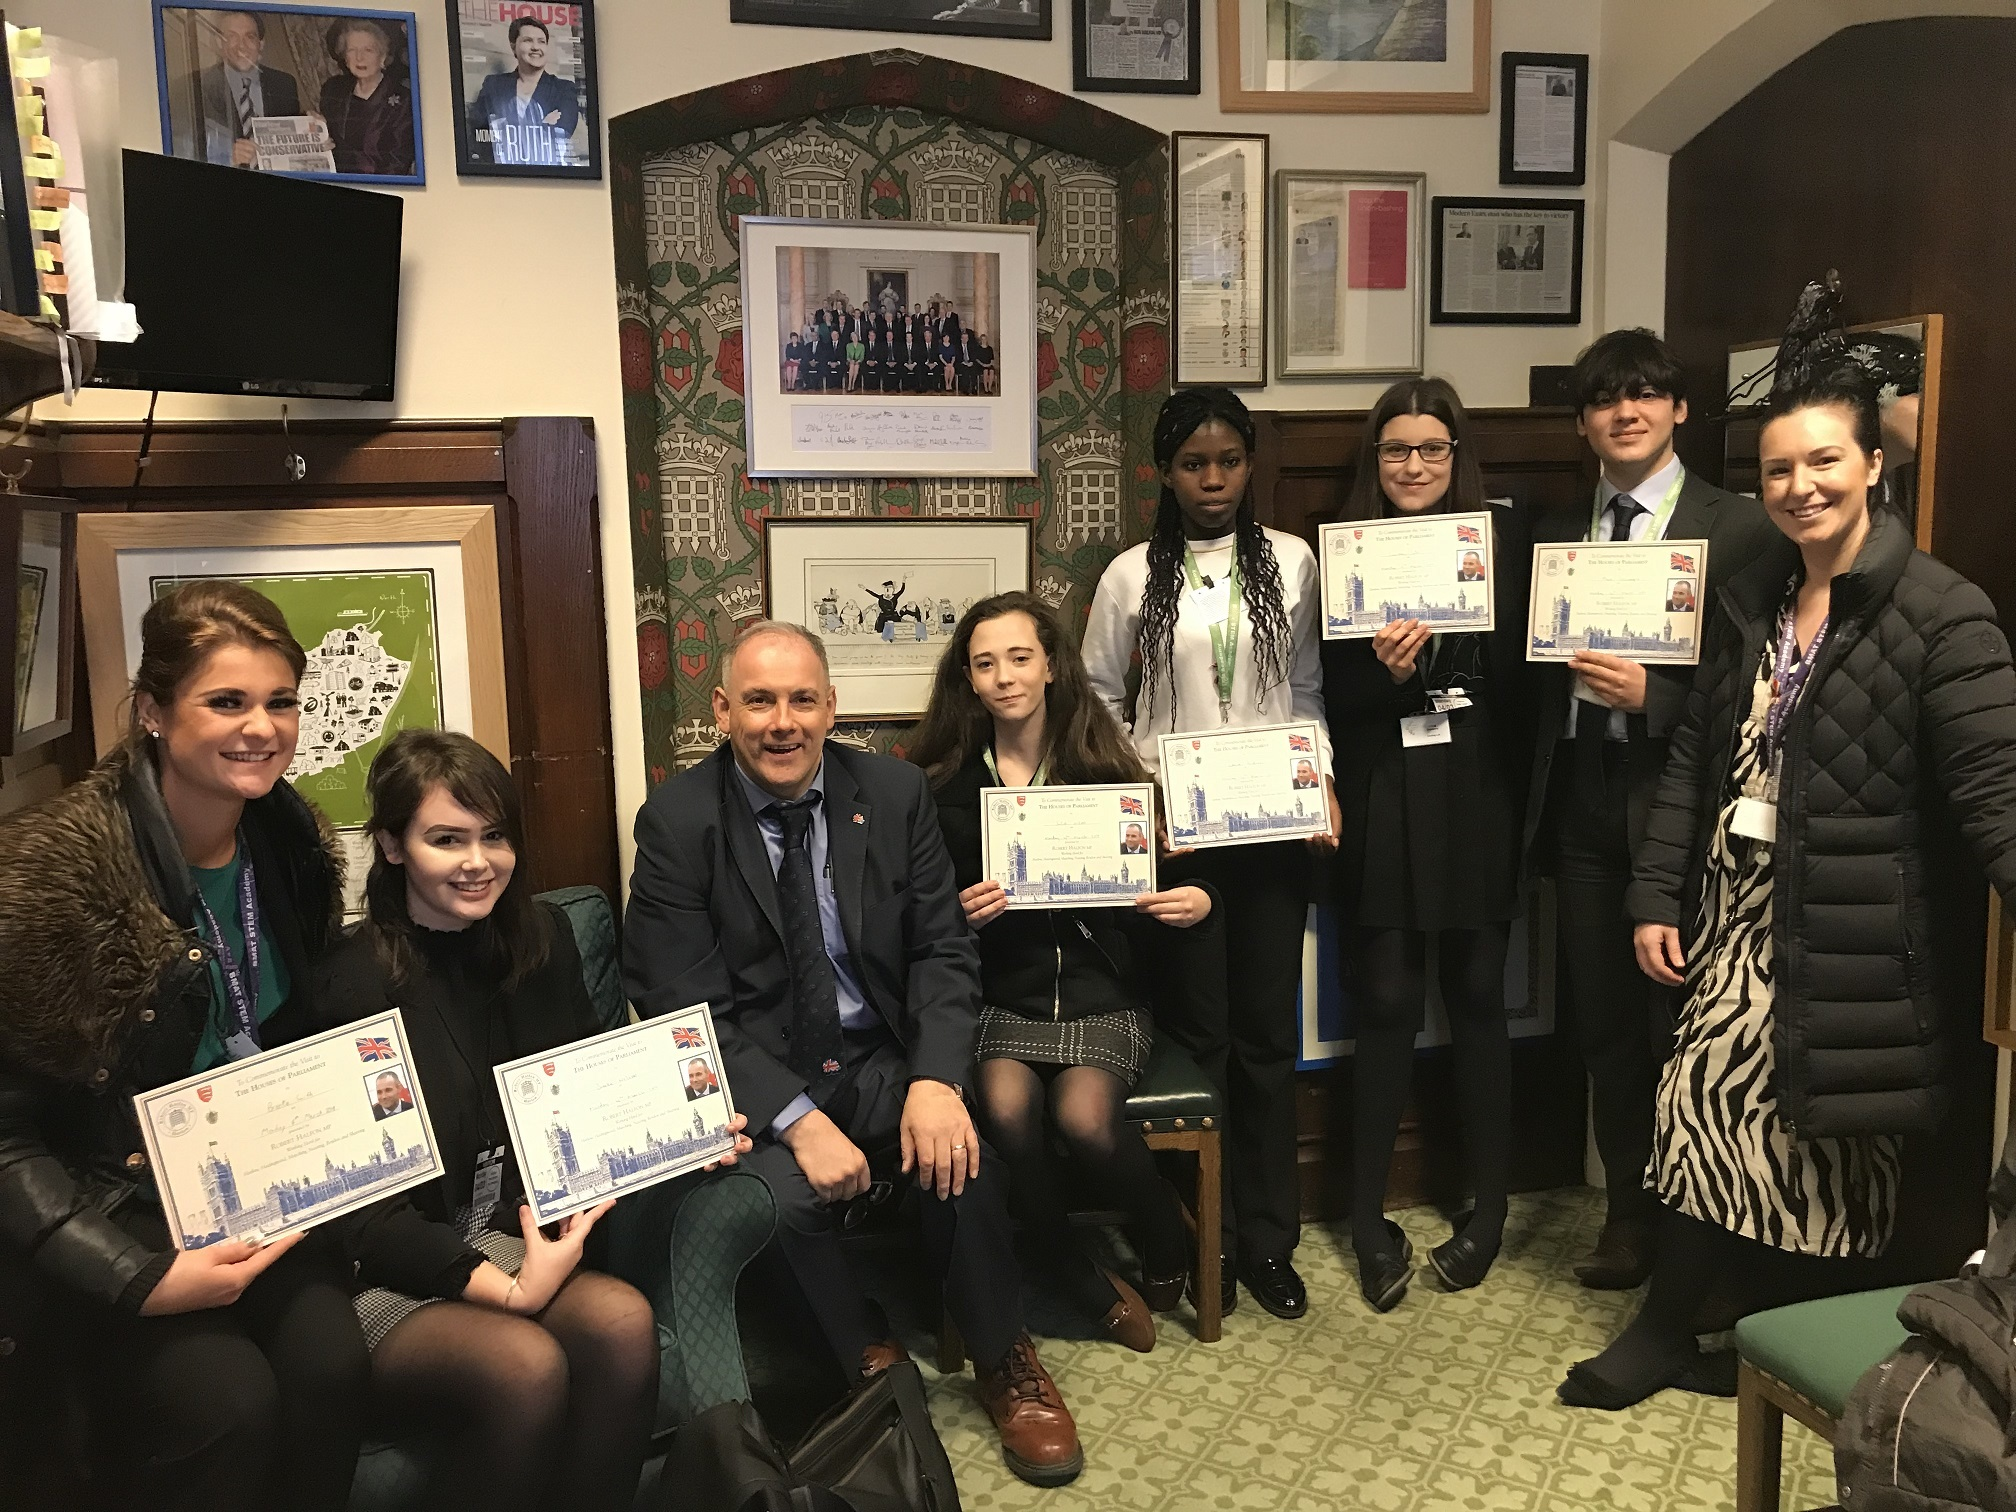 Year 10 students at BMAT STEM Academy, based at Harlow College, went to Parliament